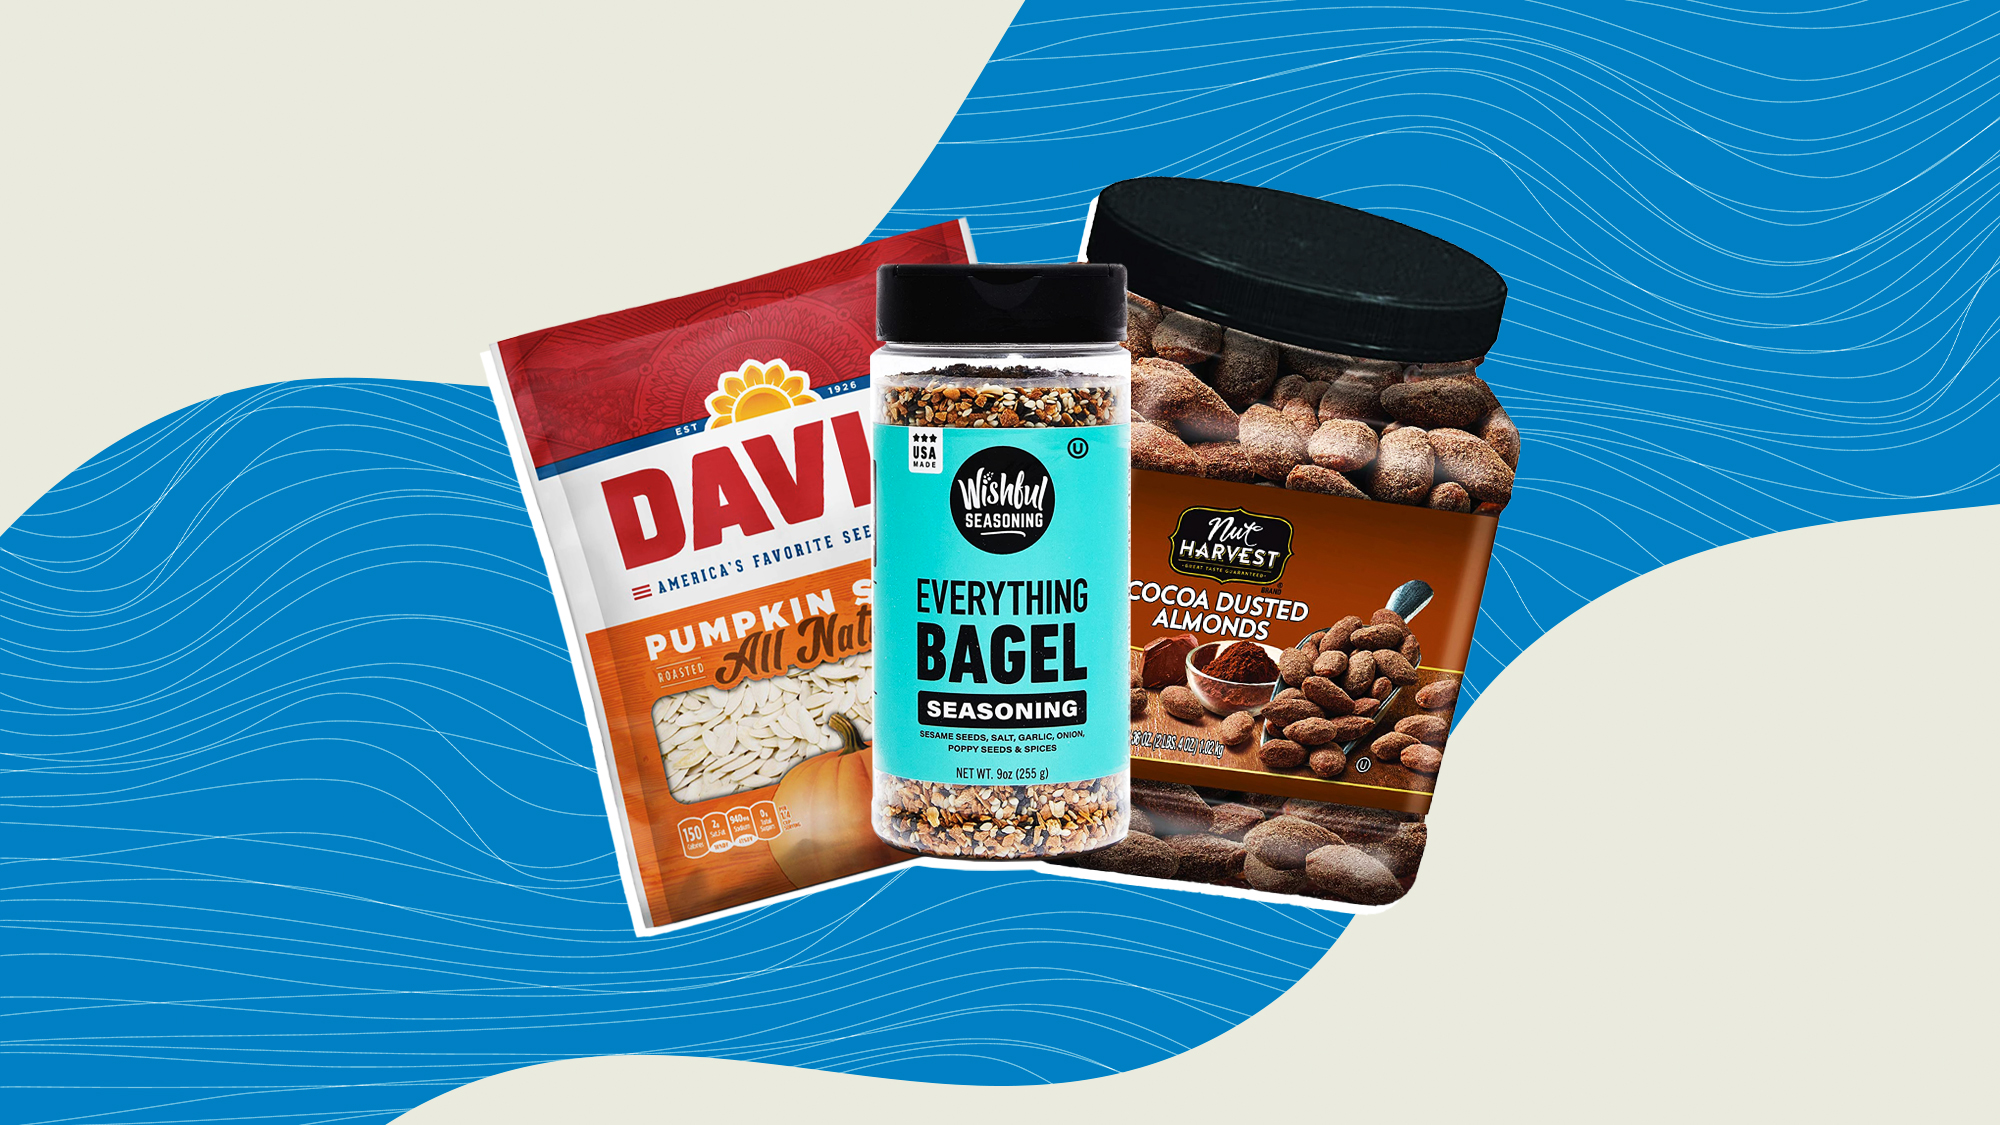 3 food products including Wishful Seasoning Everything Bagel Seasoning, Chocolate covered almonds and Pumpkin seeds on a designed background